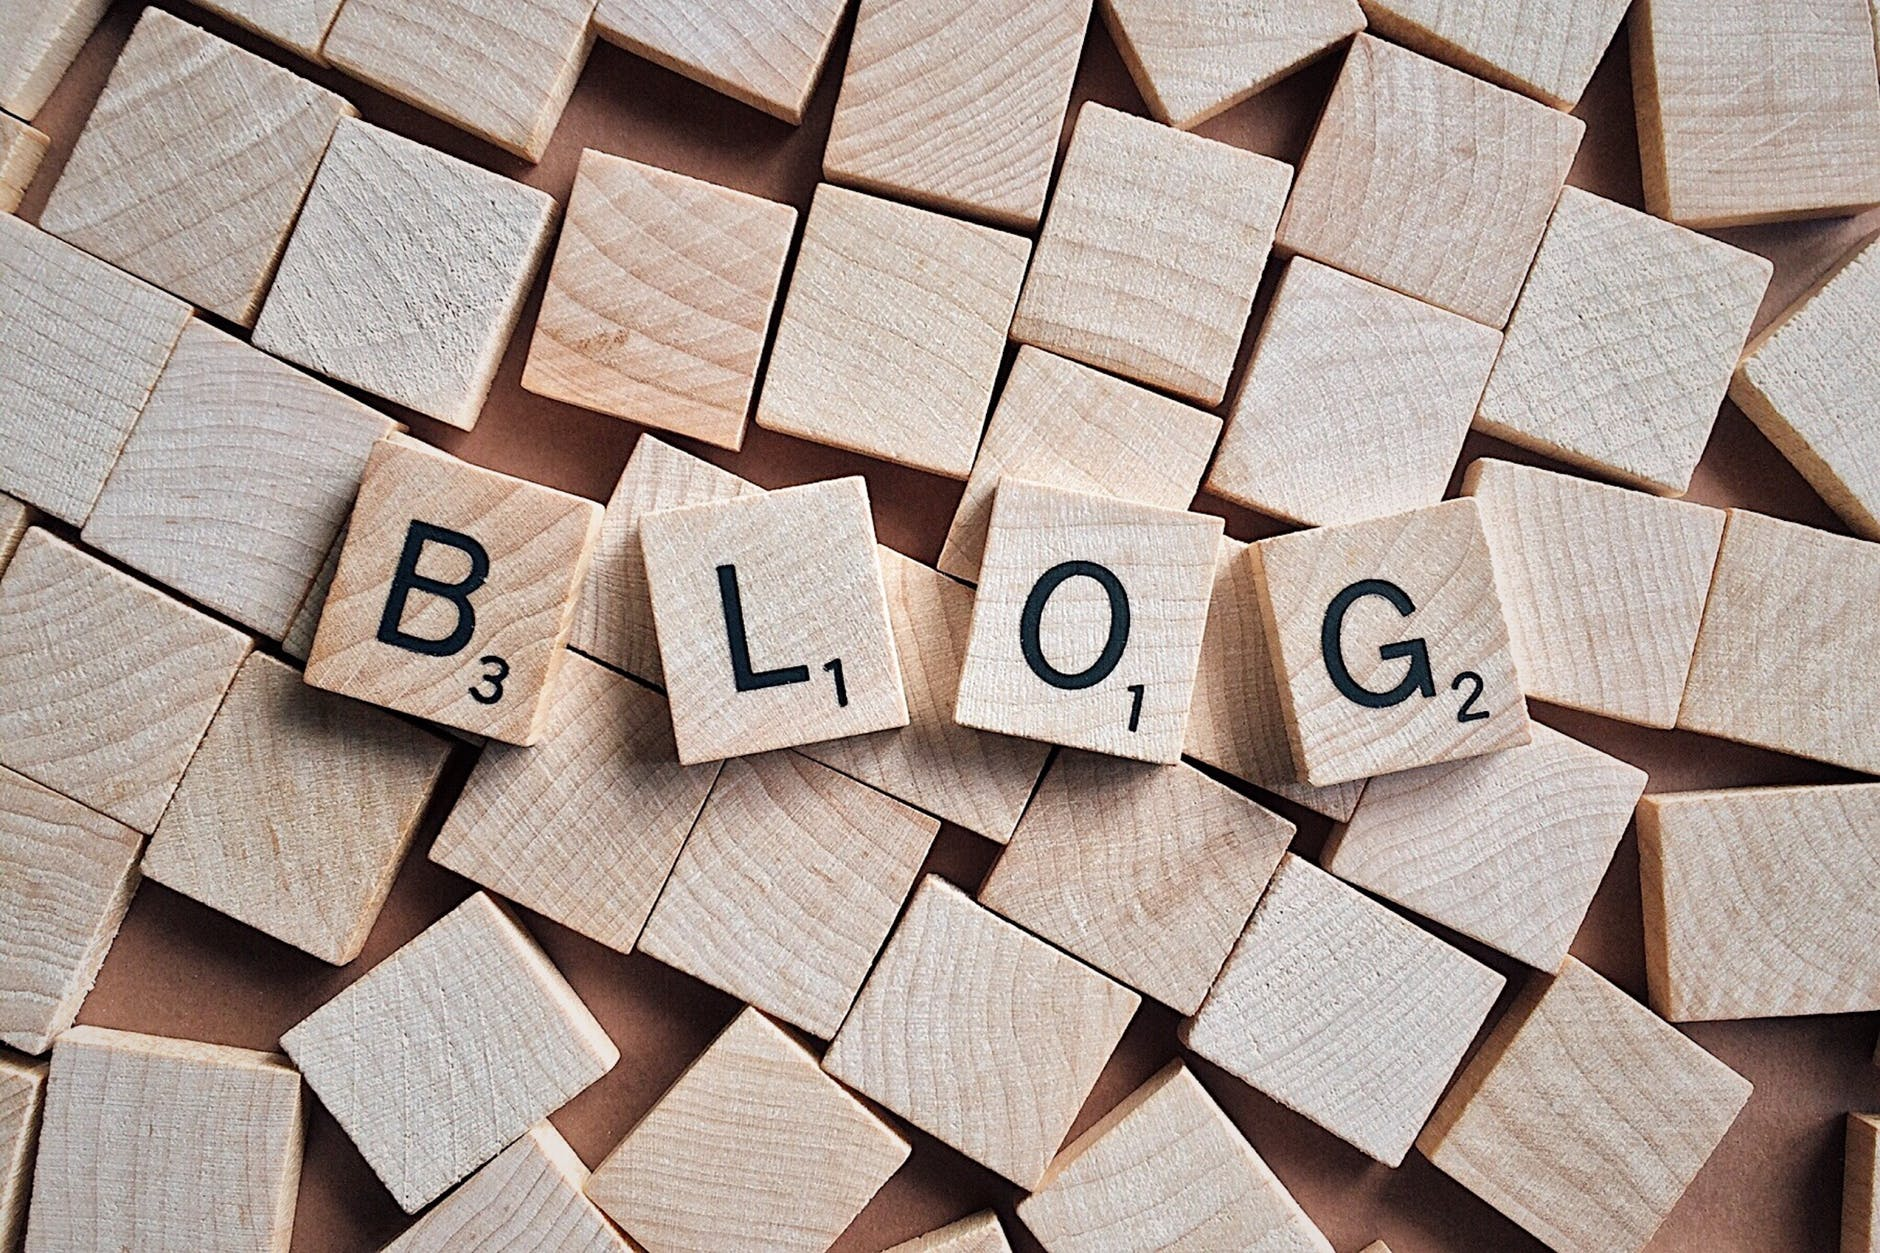 Blogging Insights #57: Your Blog Title